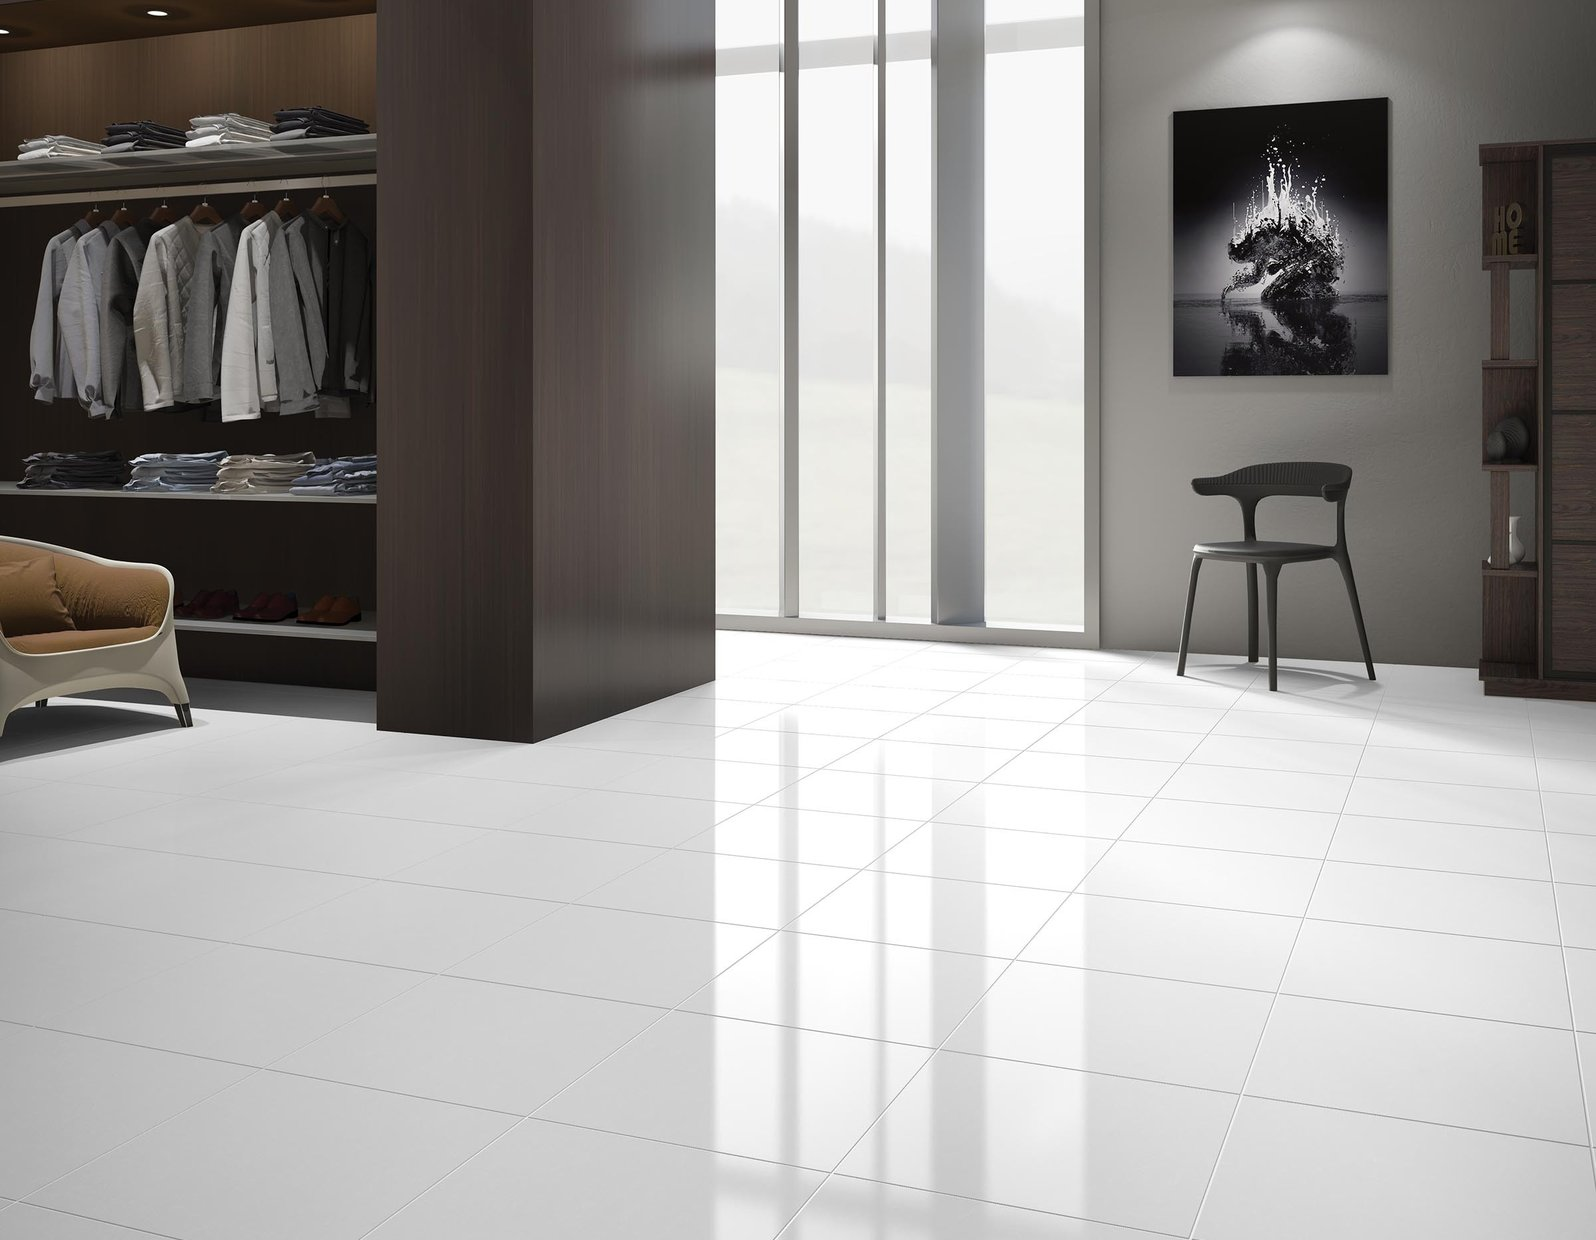 white collection Weiß keramikplatten Modern stil Wohnen